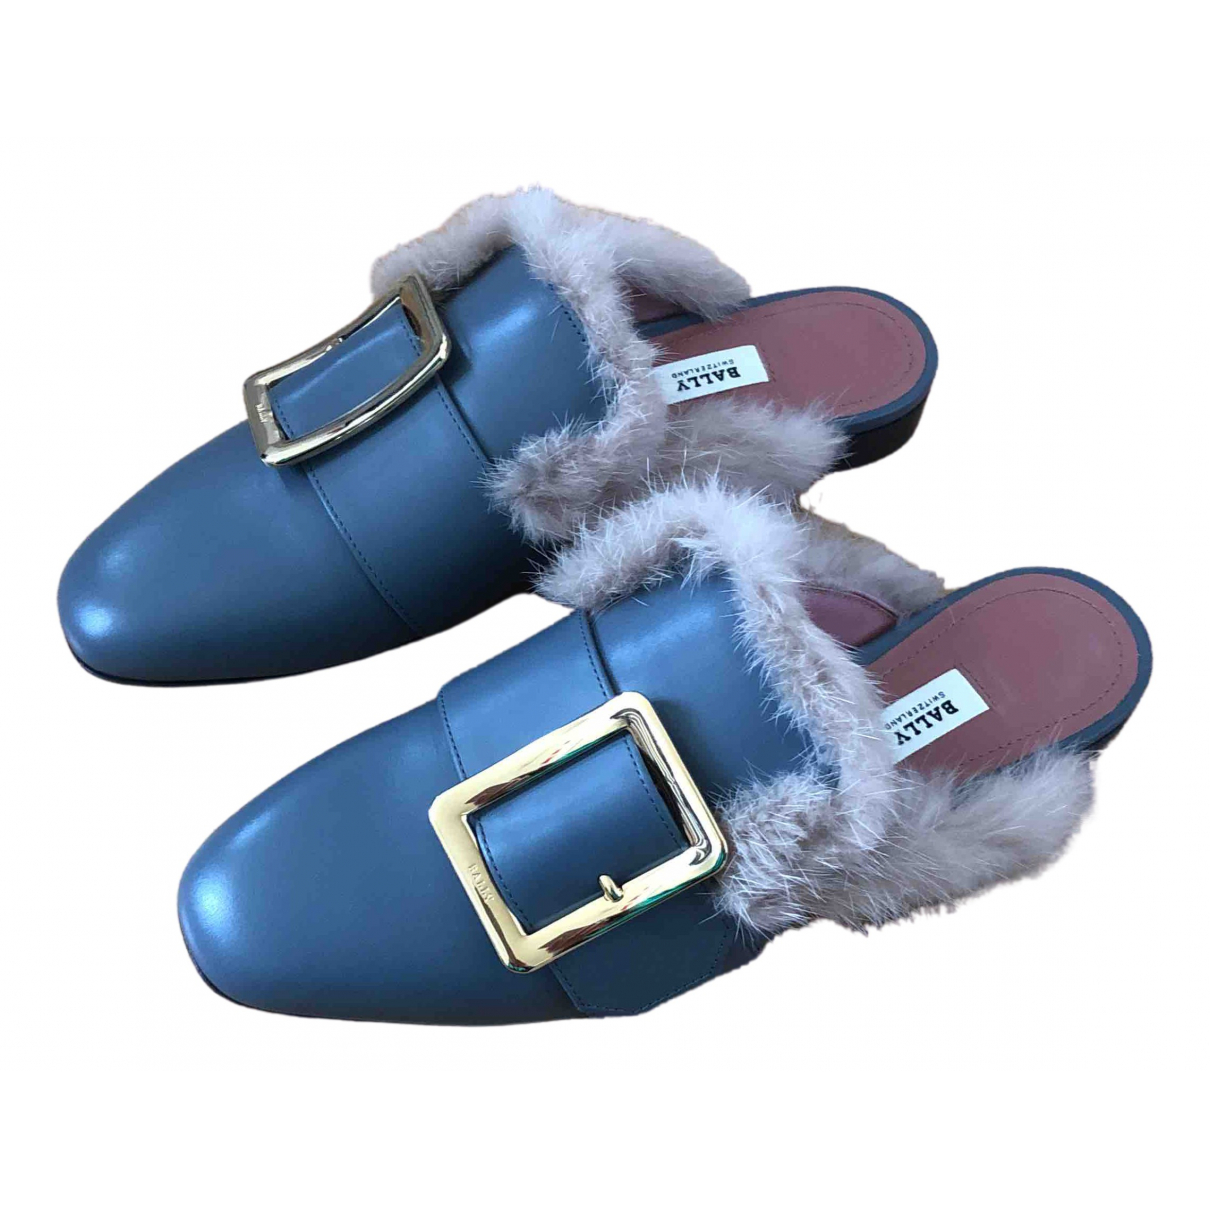 Bally N Grey Leather Mules & Clogs for Women 37 EU